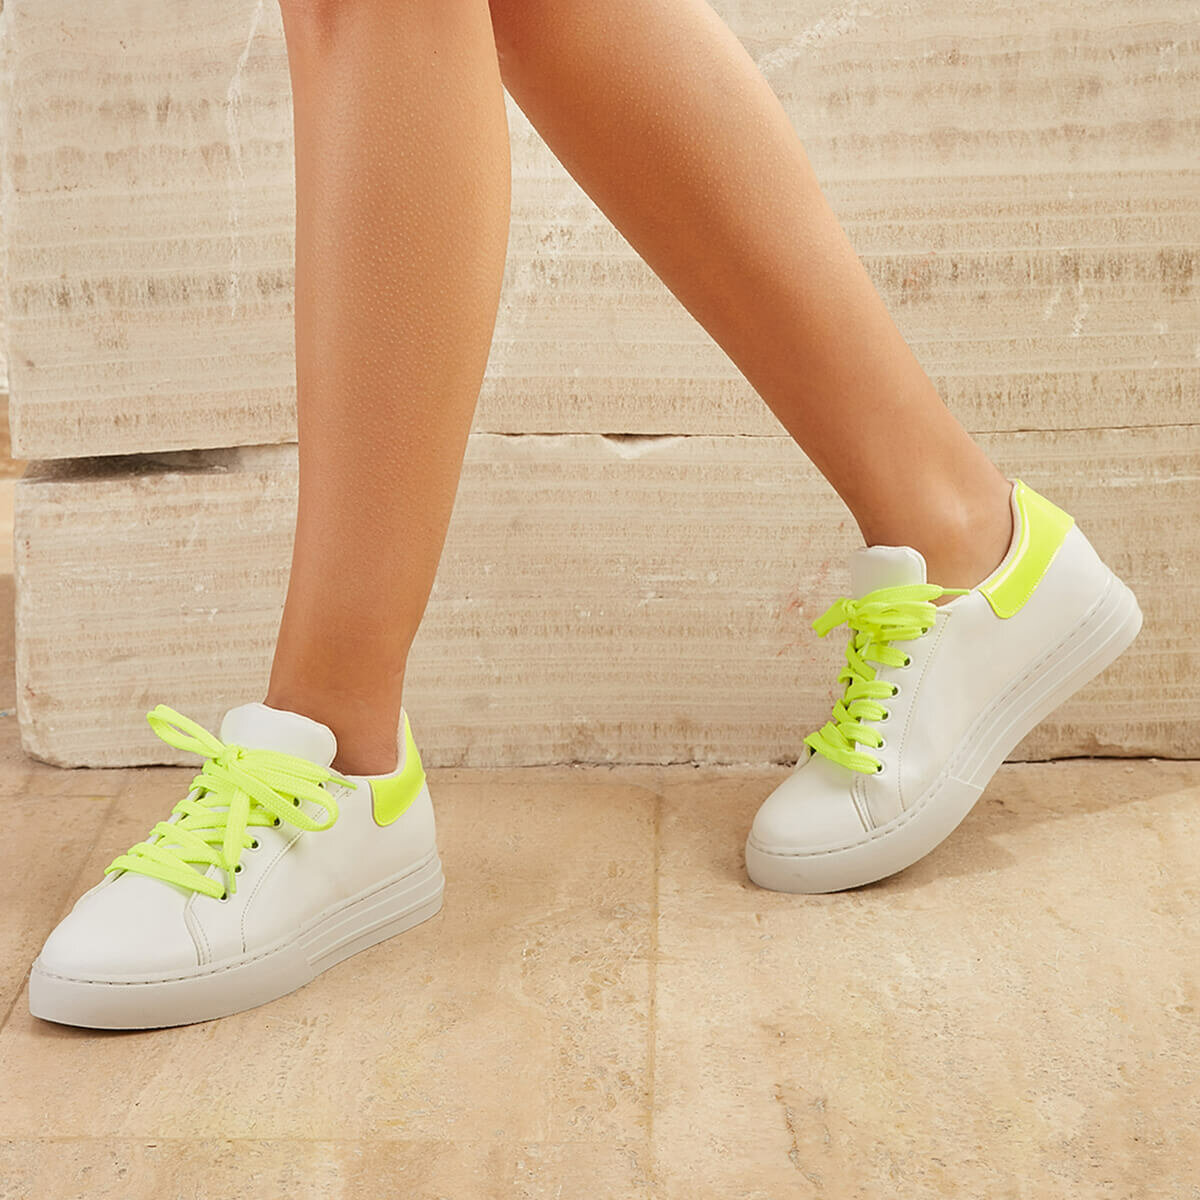 FLO MILEN99Z SKIN Neon Yellow Women 'S Sneaker Shoes BUTIGO